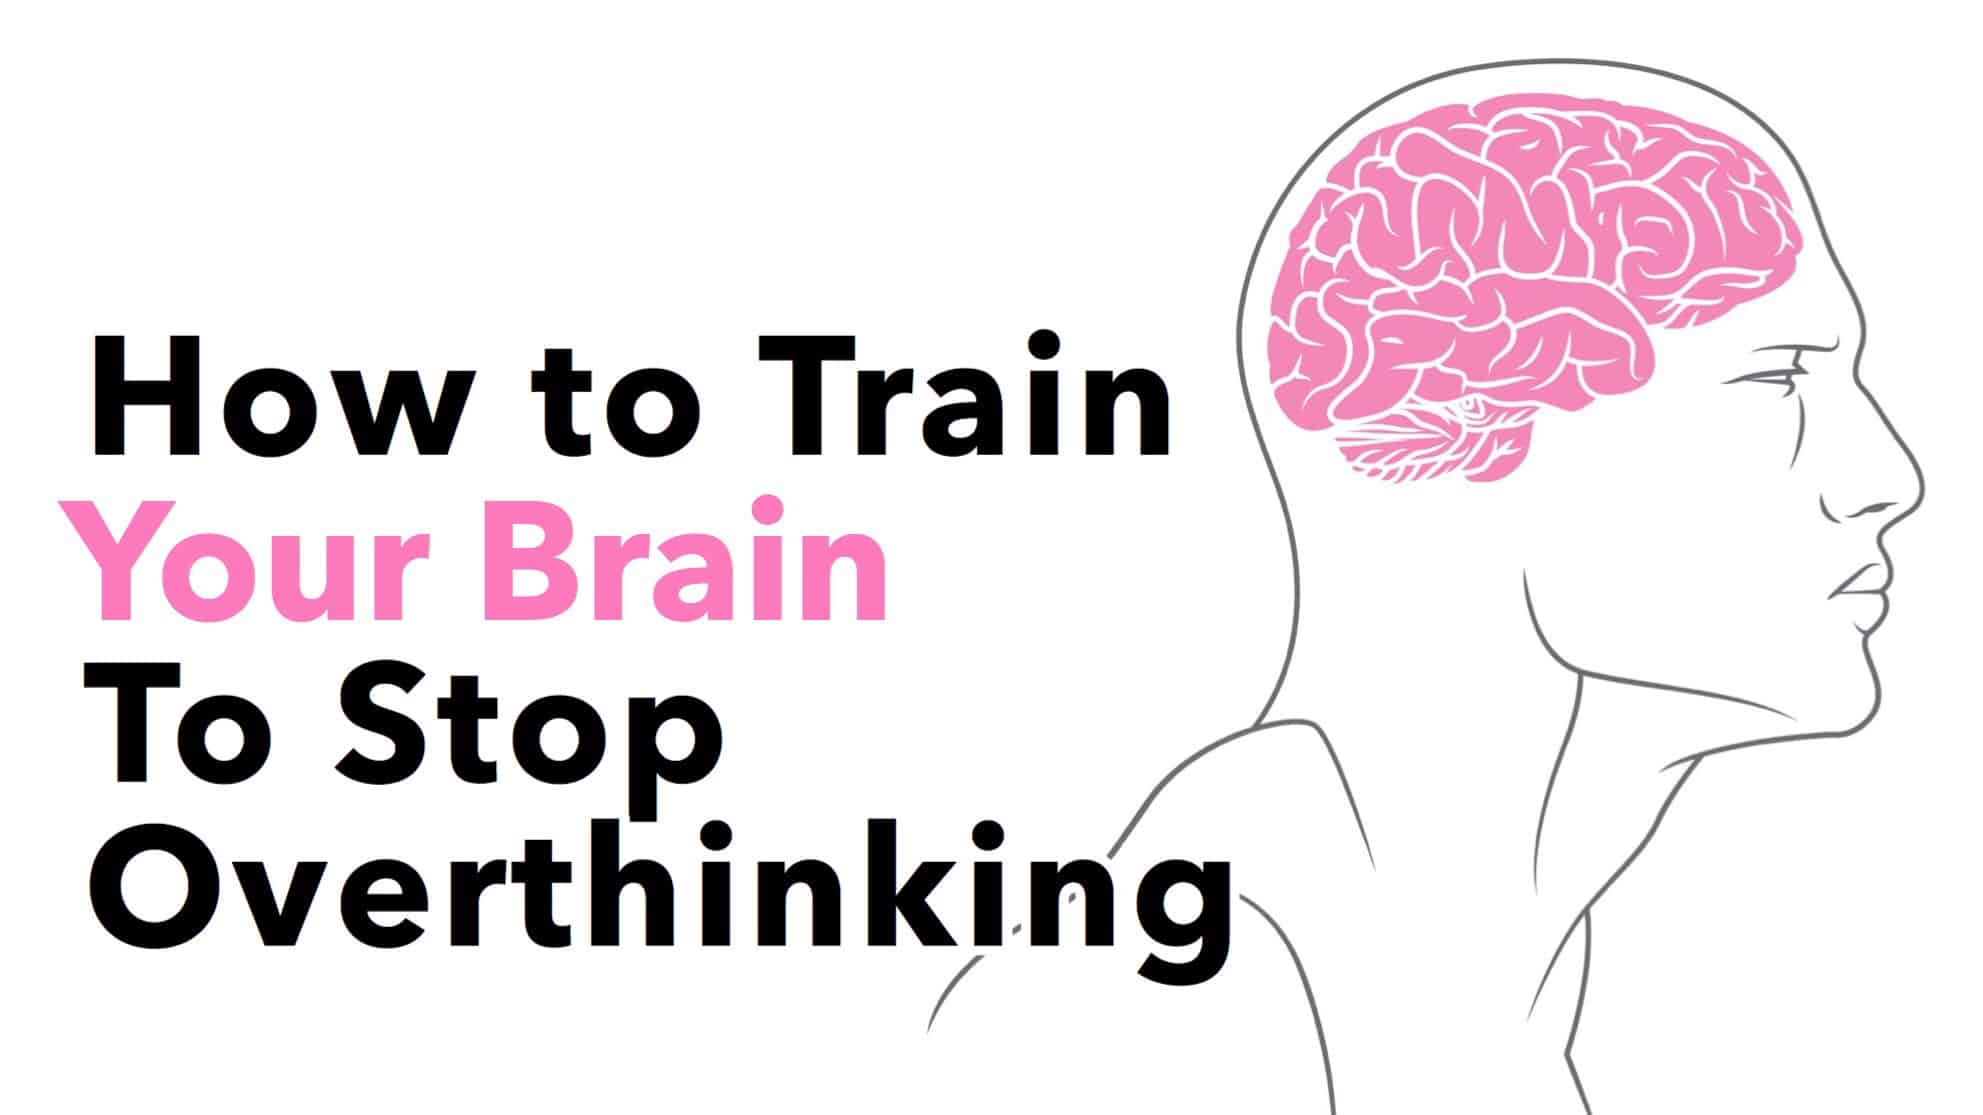 How can you train your brain to stop overthinking?